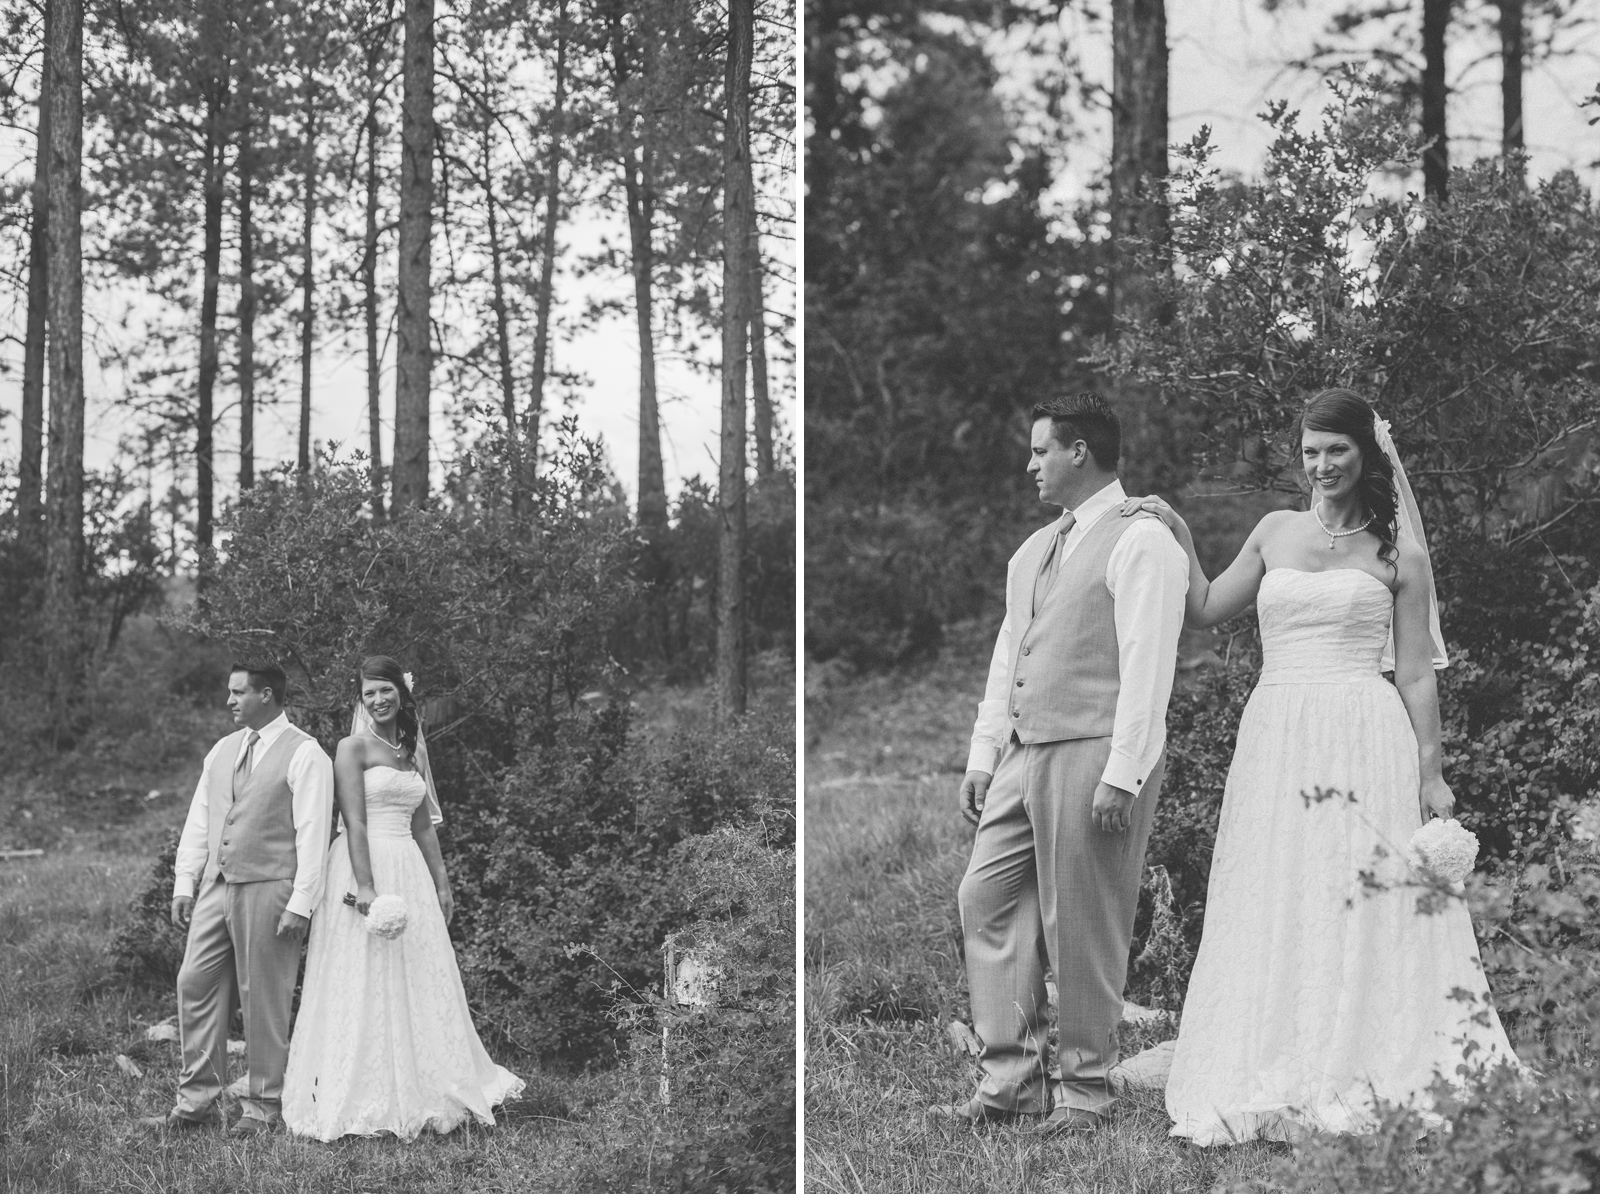 084-lake-trees-groom-bride-wedding-cabin-woods-forest-pictures-photos-dress-photography-portraits-first-look-firstlook-reveal-happy-farmington-aztec-durango-mancos-co-nm